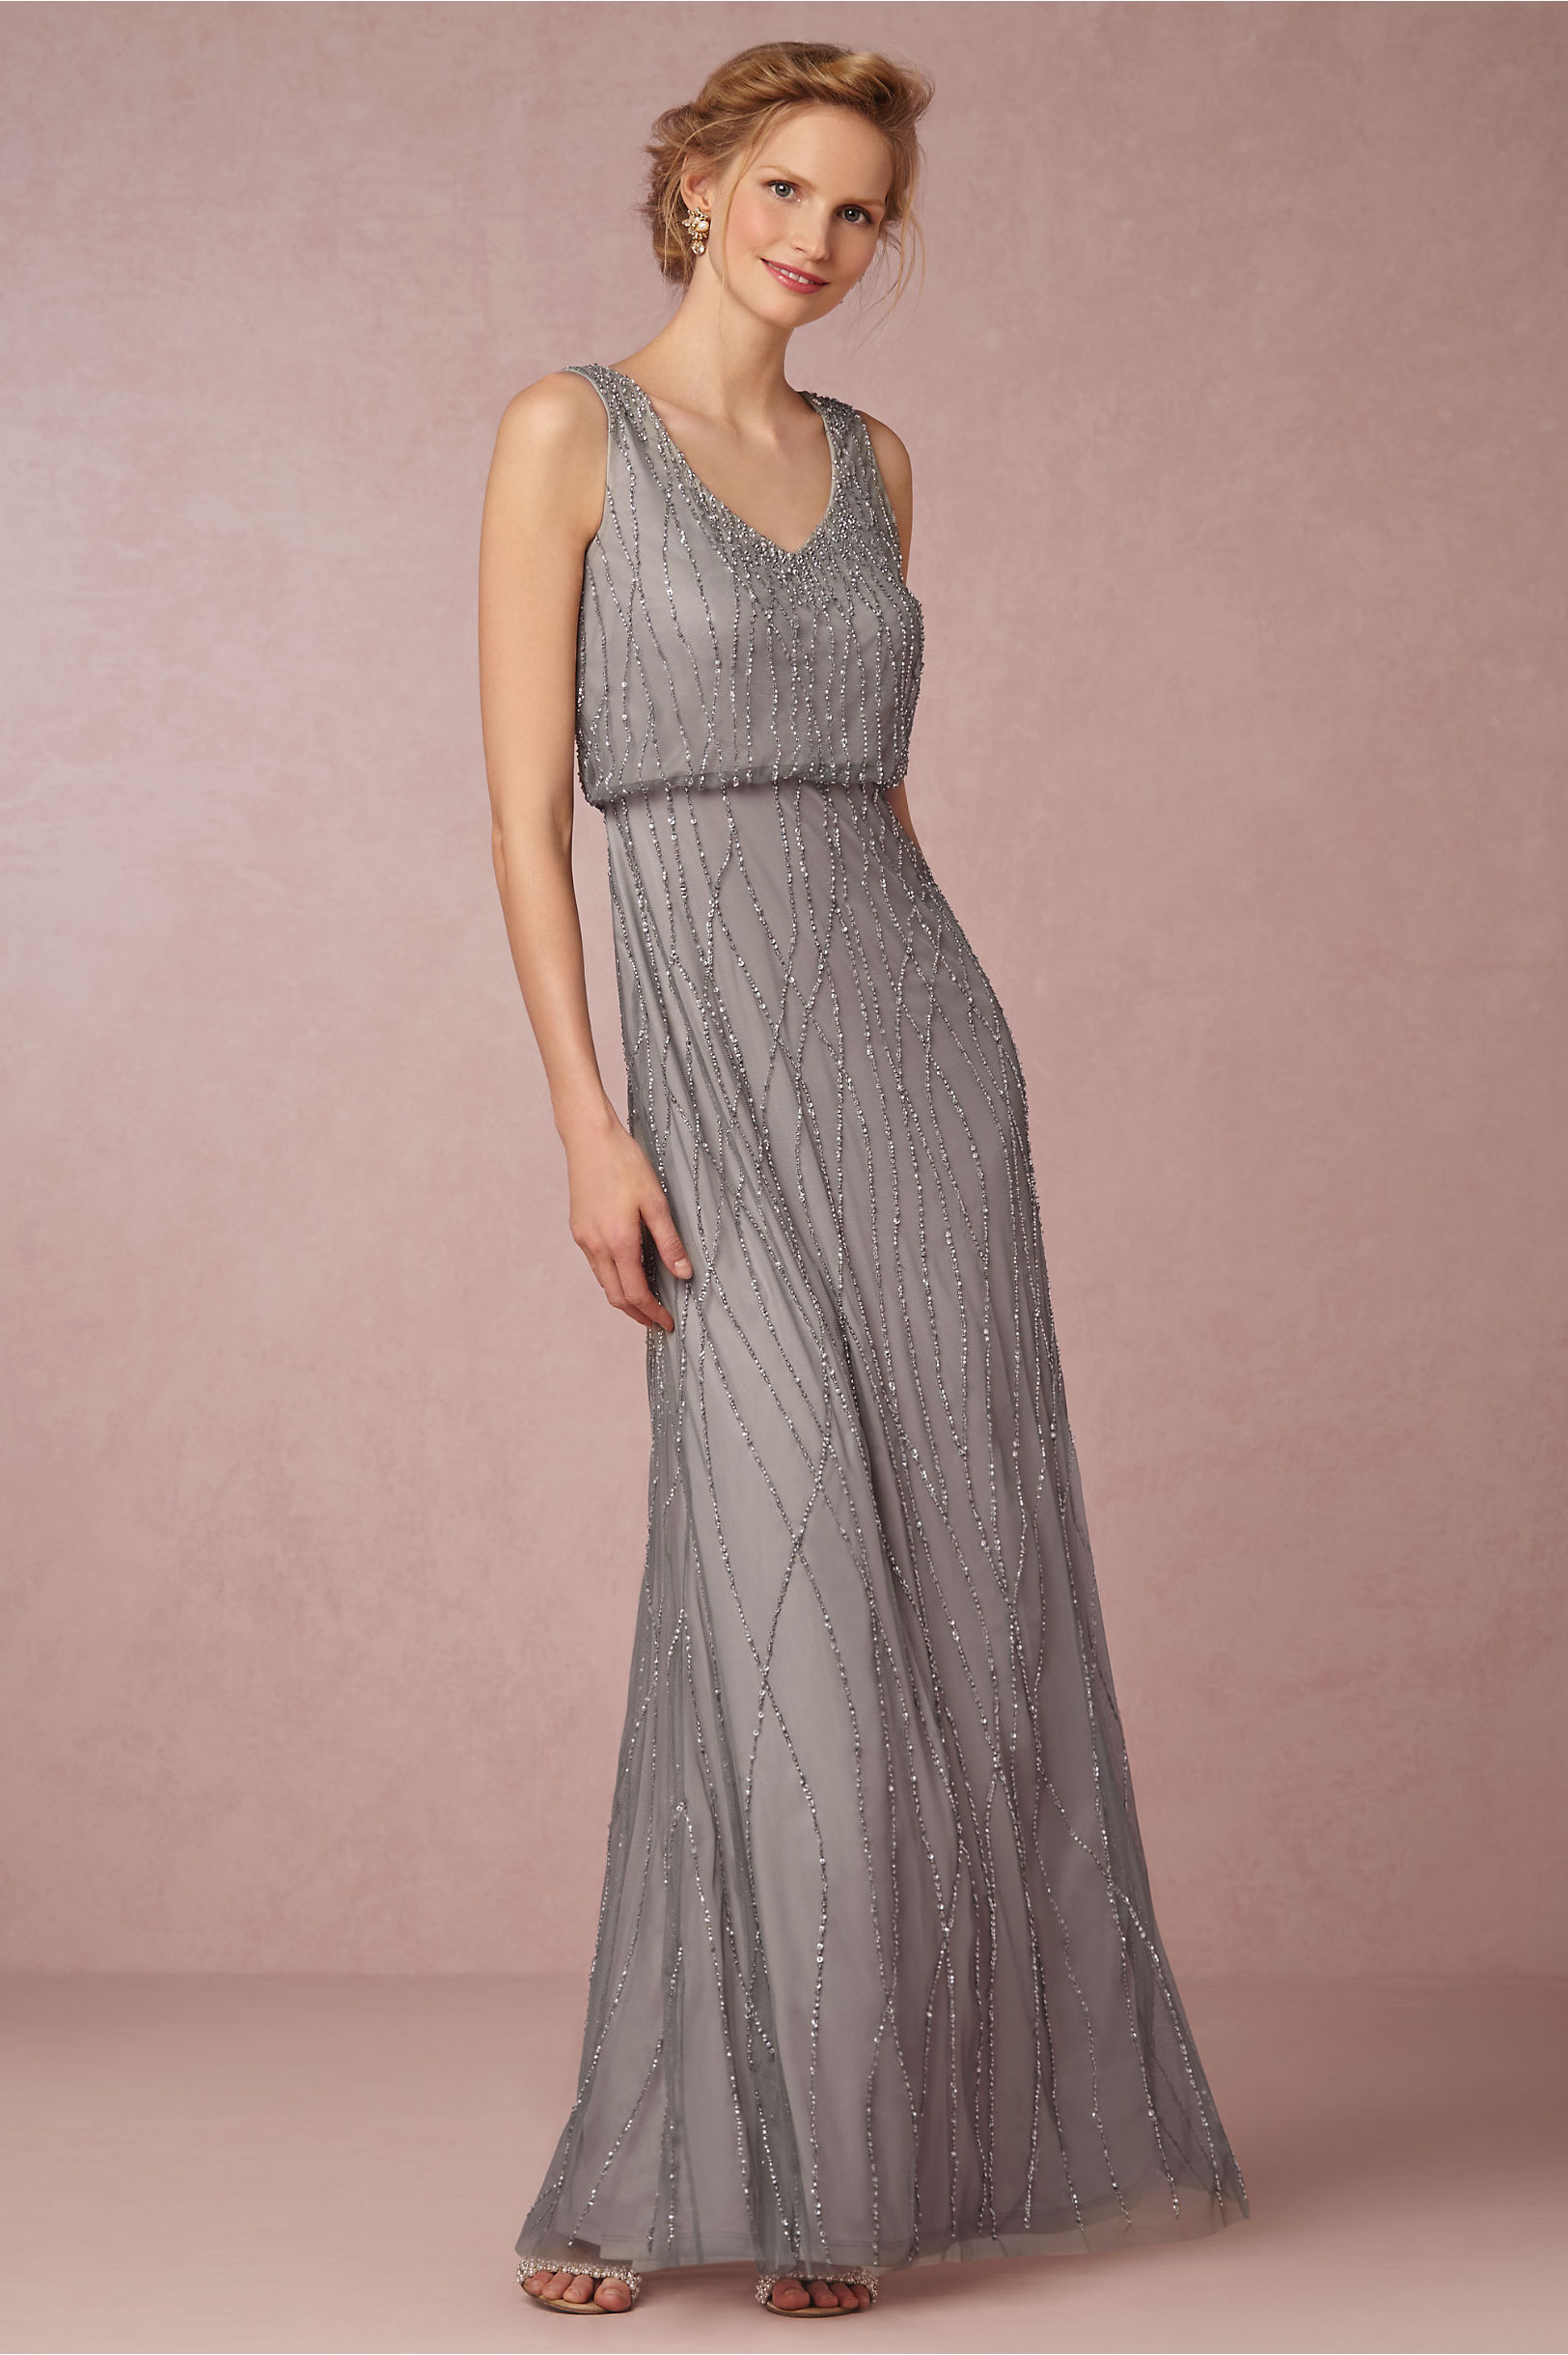 Brooklyn Dress in Bridesmaids & Bridal Party | BHLDN